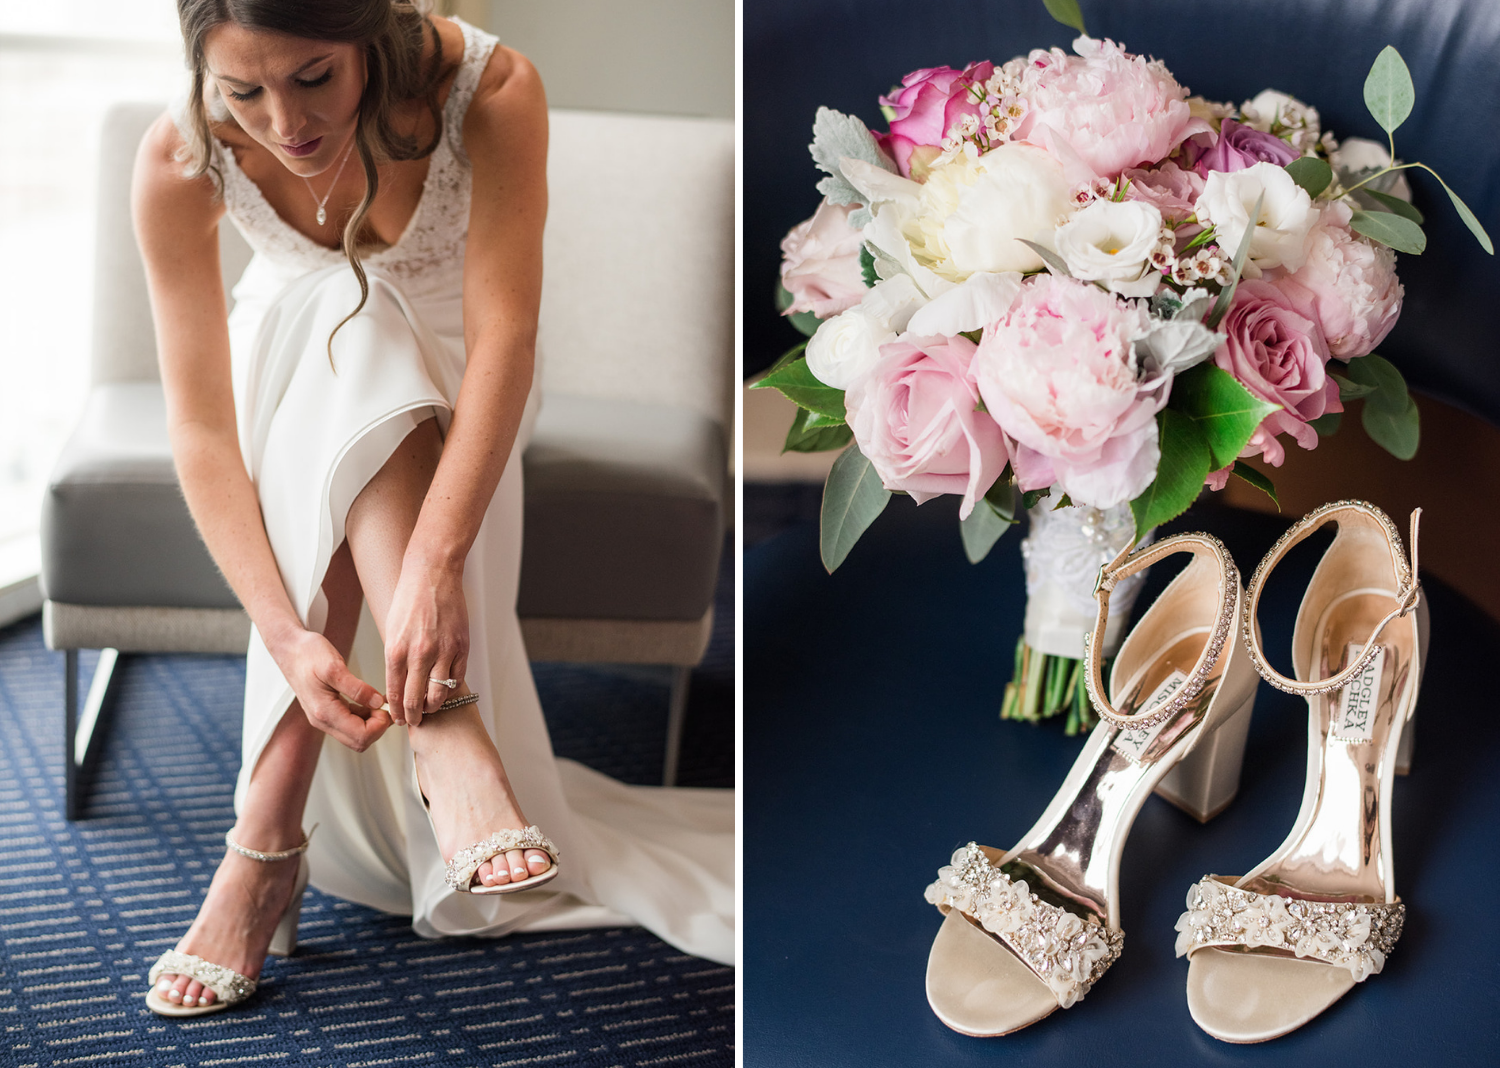 bride putting on her wedding shoes and a photo of her wedding day shoes along with her bridal bouquet